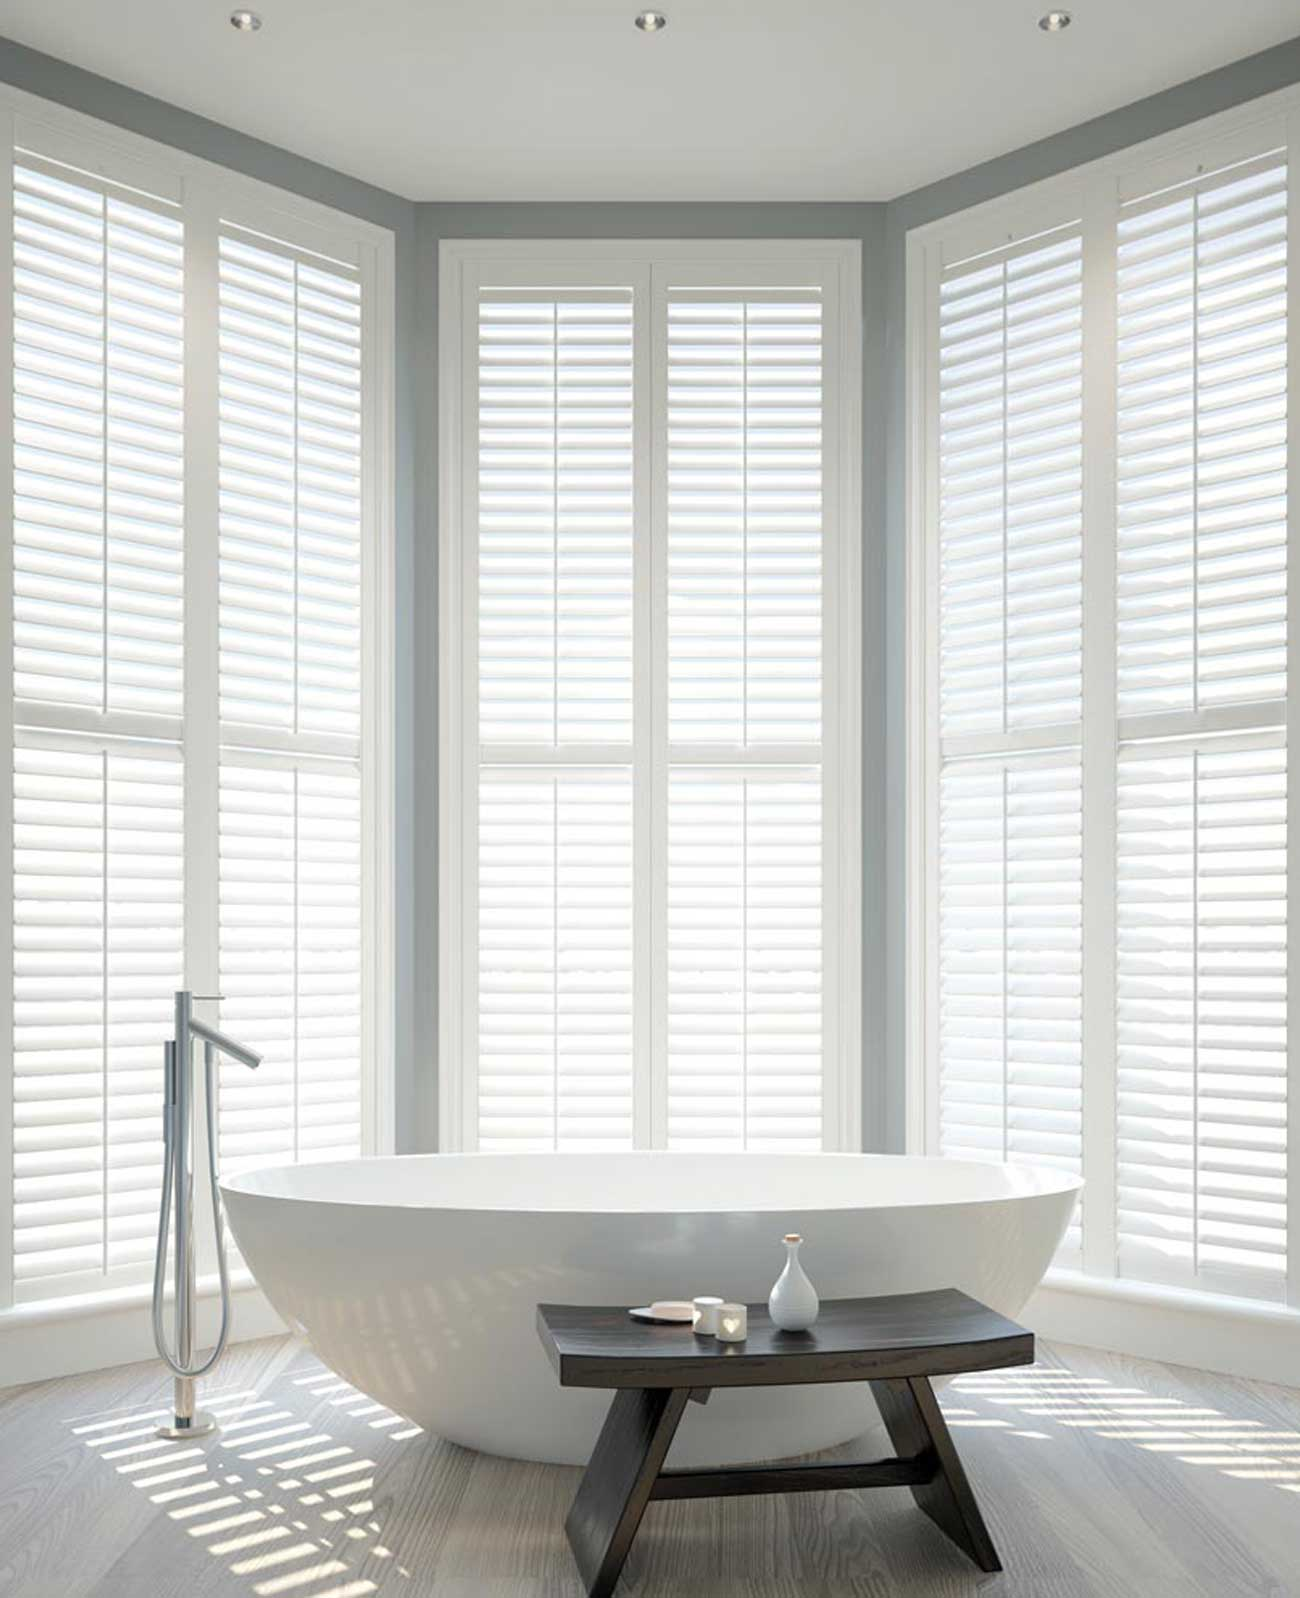 Stylish Shutter Provider in Lurgan, Northern Ireland - Apex Blinds